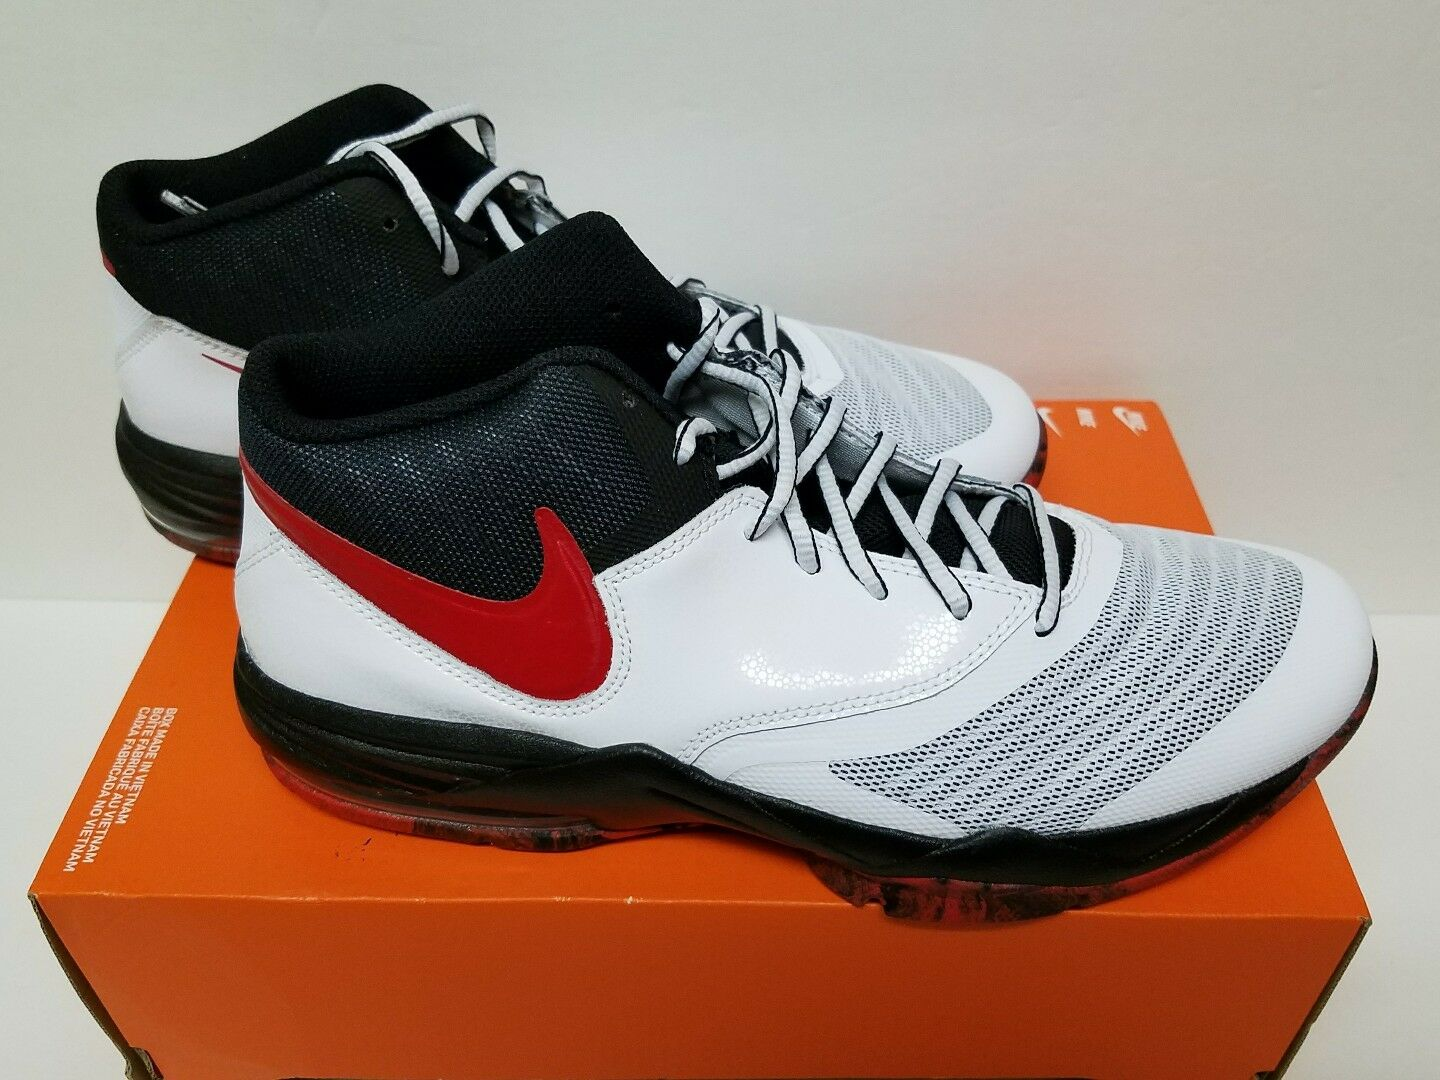 NIKE AIR MAX EMERGENT Size 10 & 11 WHITE/UNIVERISTY RED & BLACK 818954 102